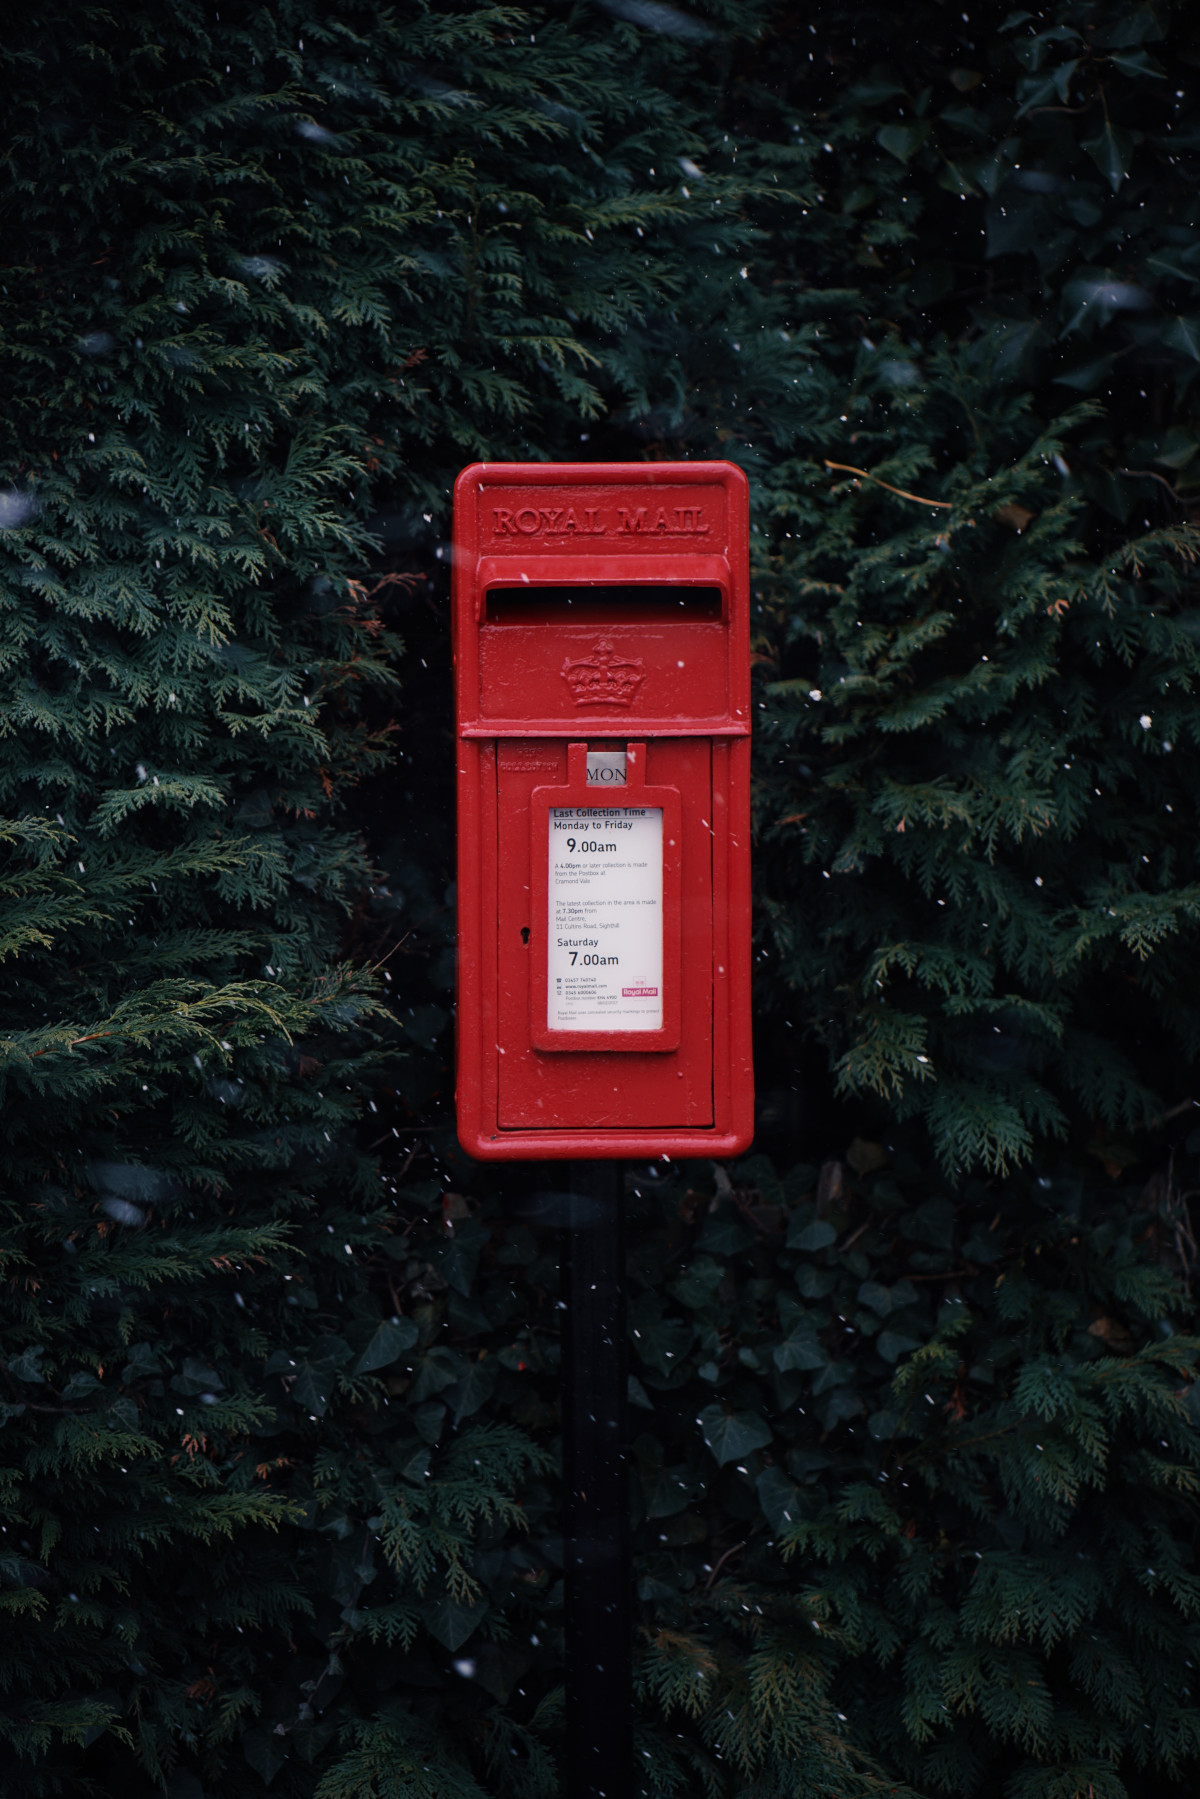 Postbox where you can mail your thank you gifts!